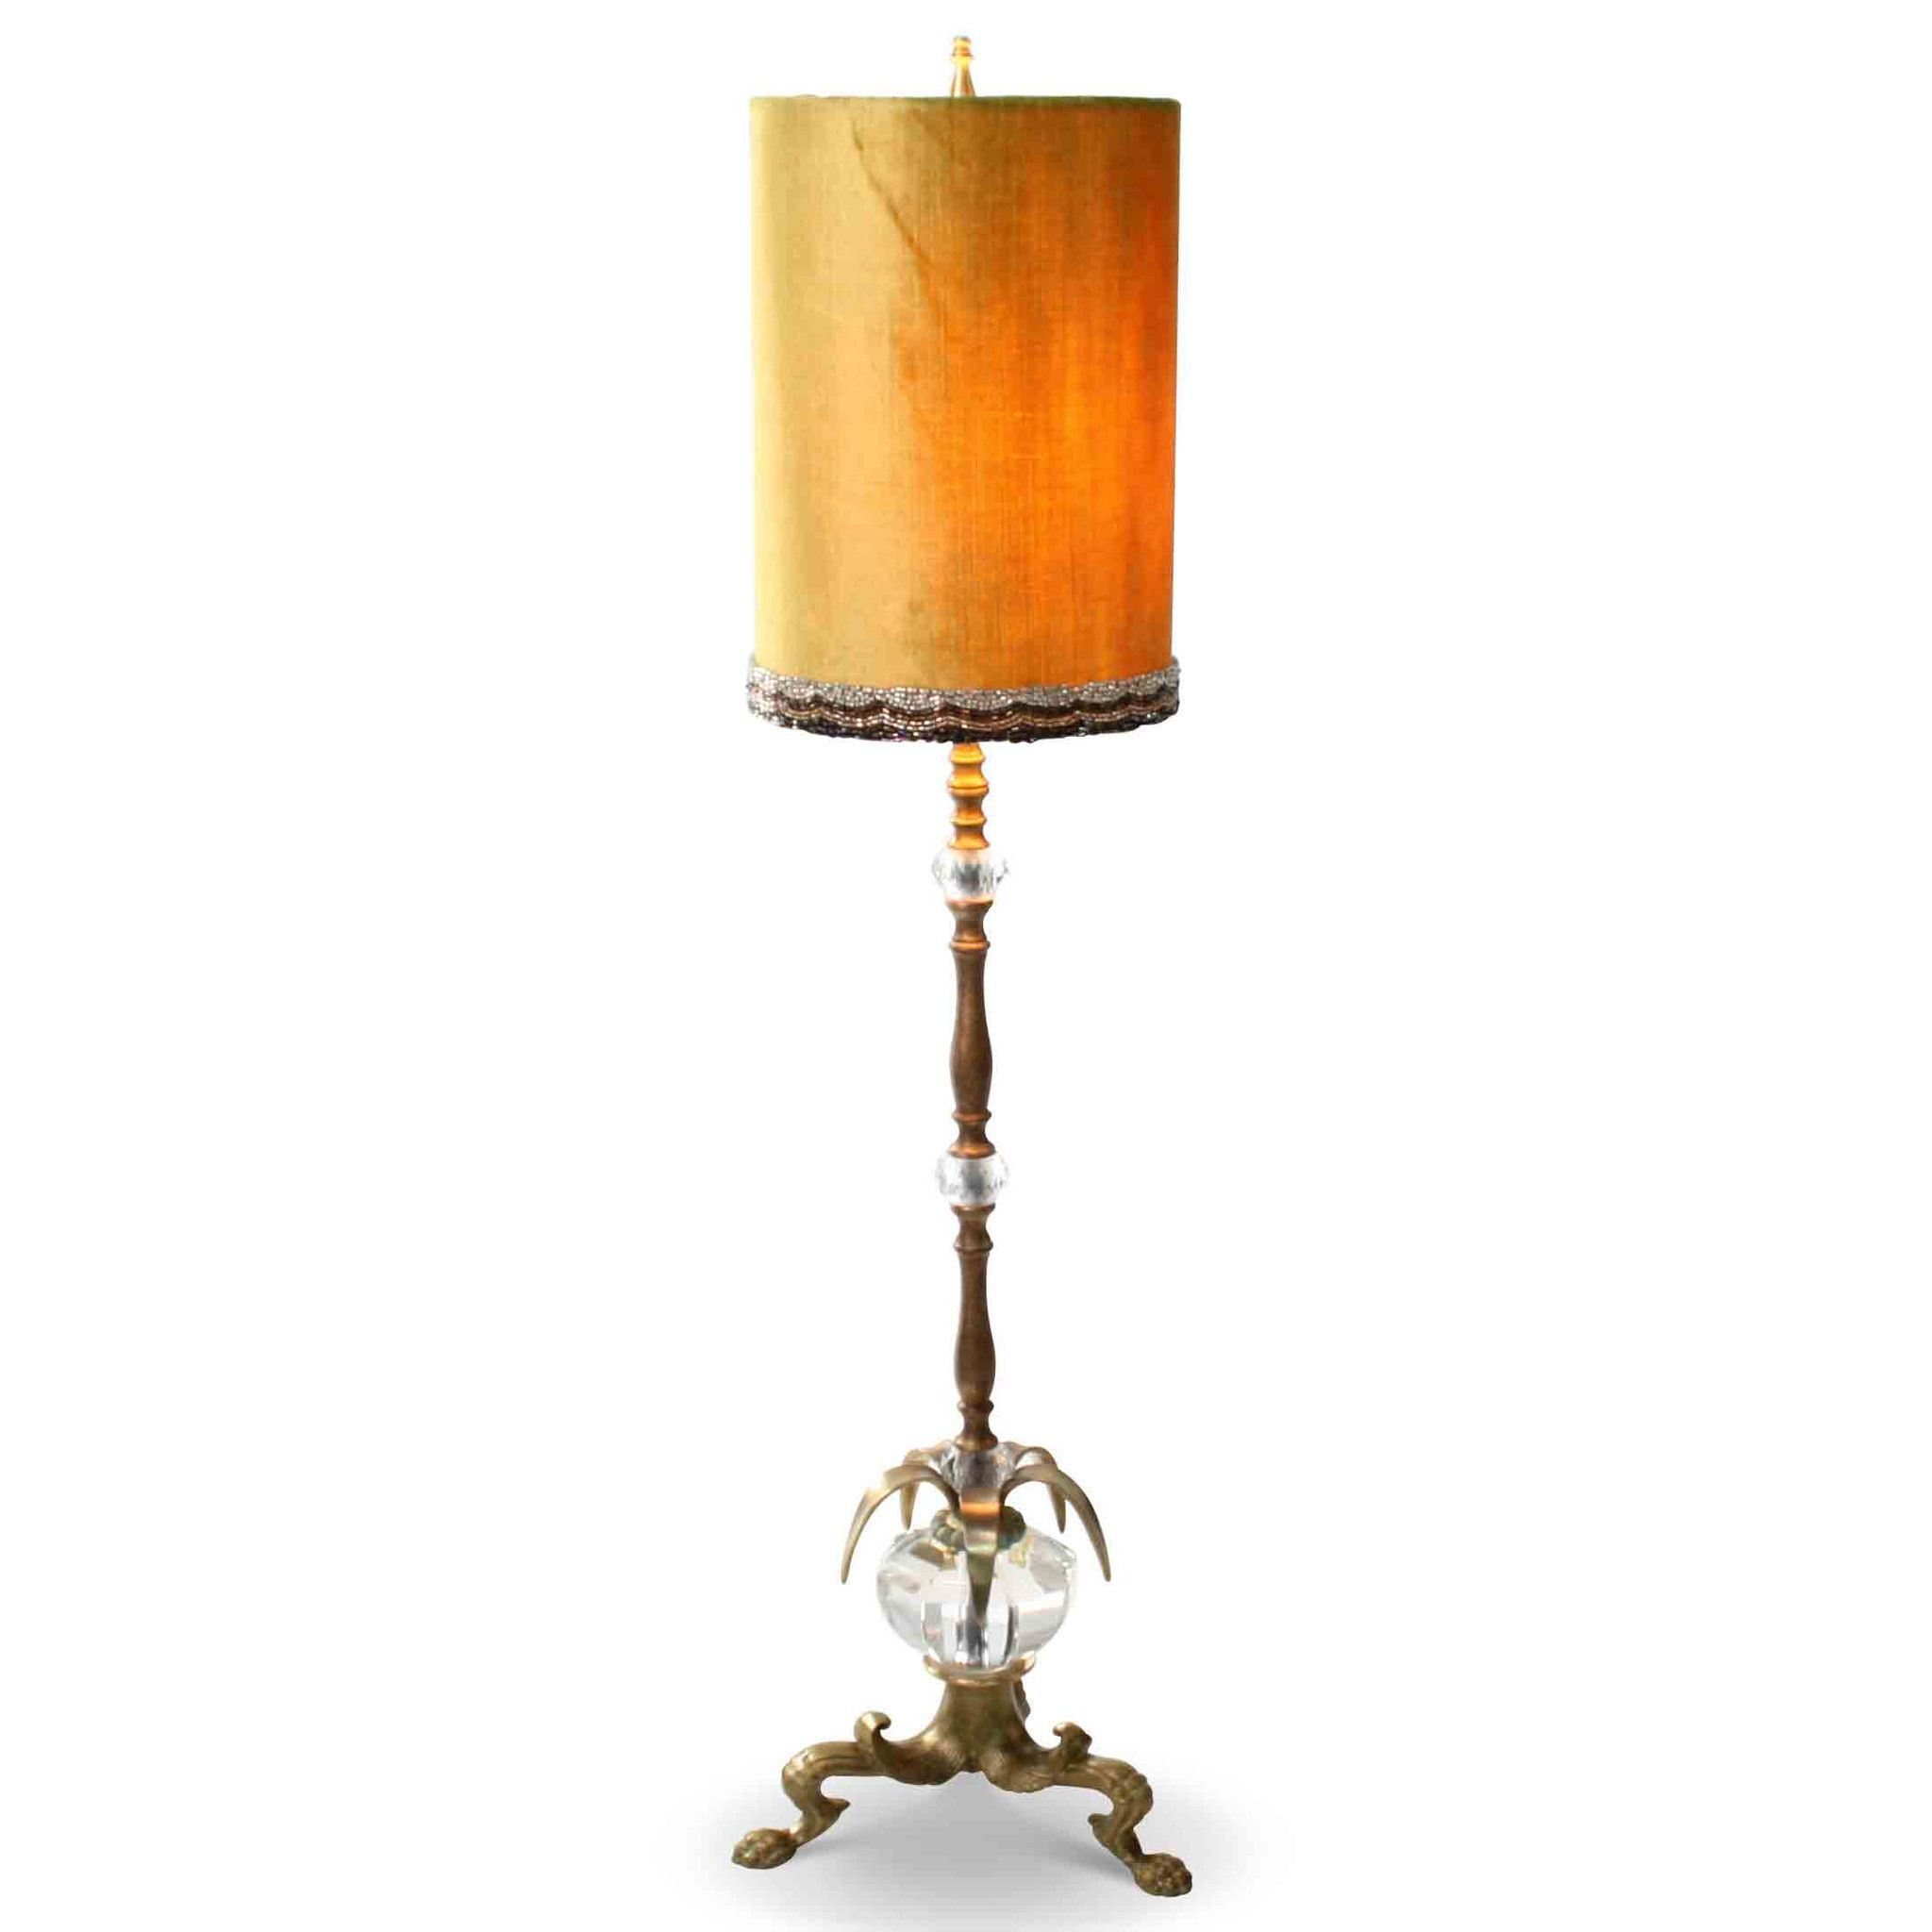 Sweetheart gallery pal table lamp artistic artisan designer lamps sweetheart gallery pal table lamp artistic artisan designer lamps sweetheart gallery sin table lamp geotapseo Image collections